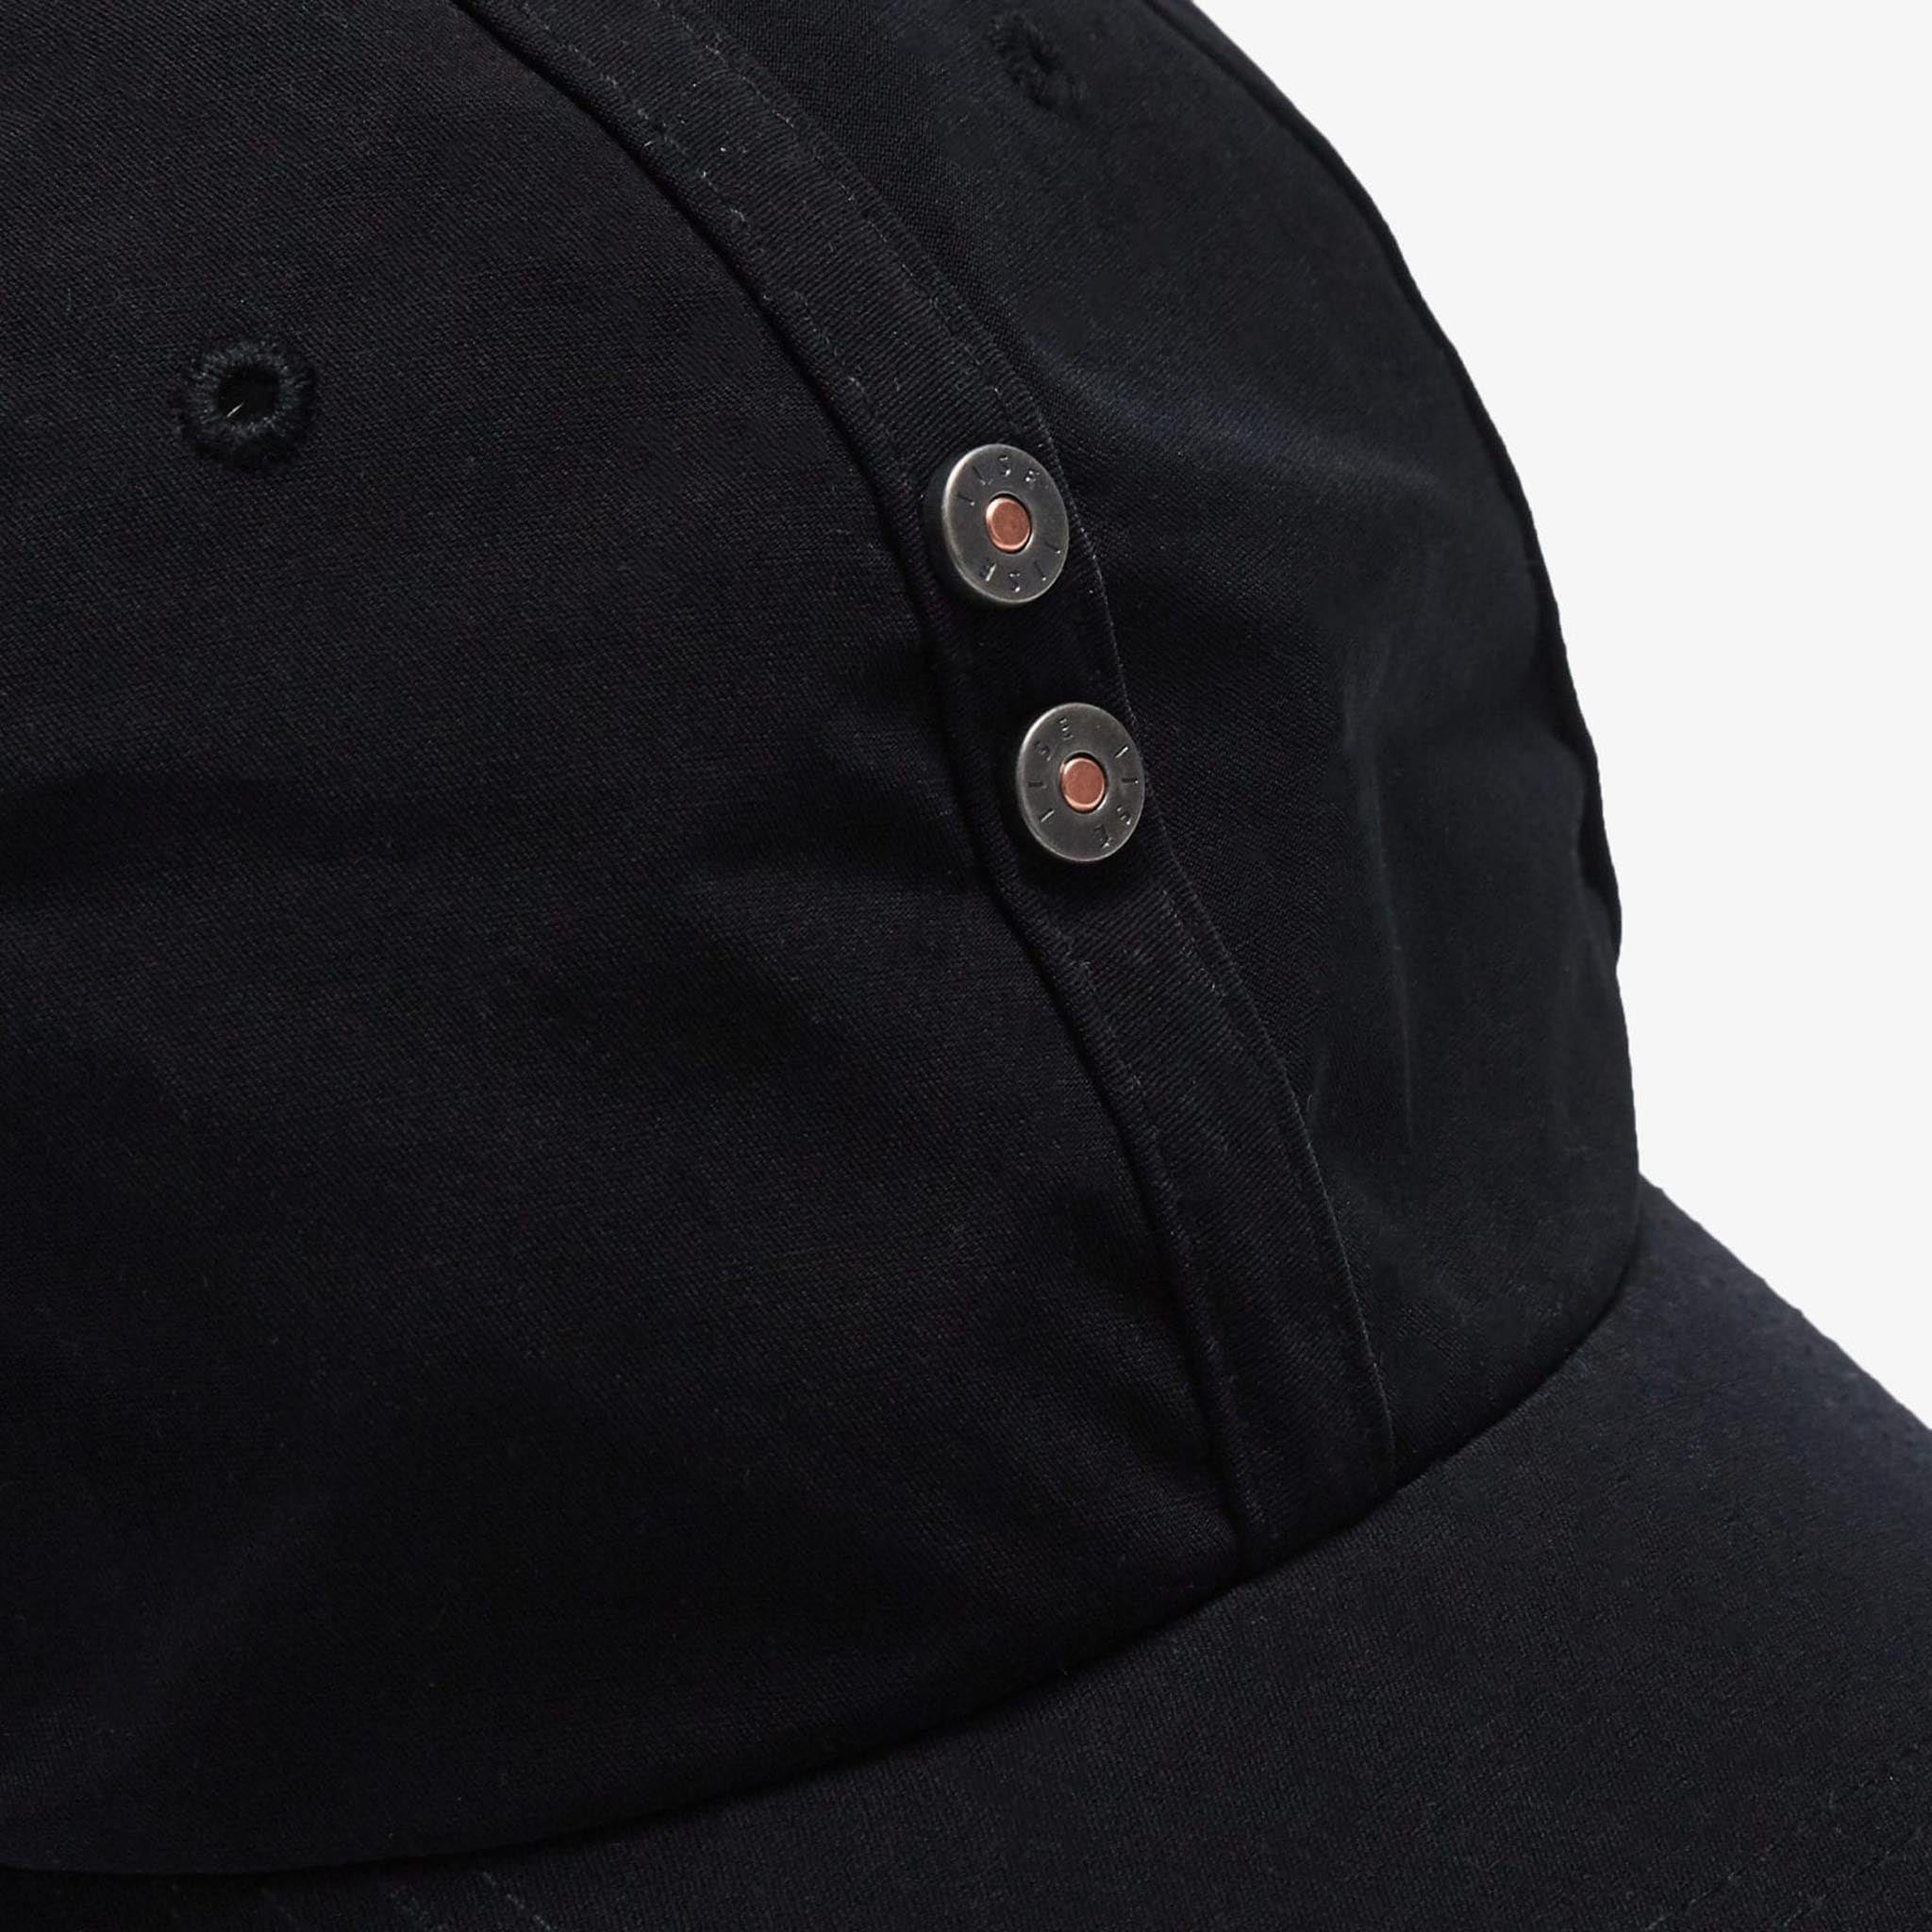 IISE Denim Rivet Cap Black